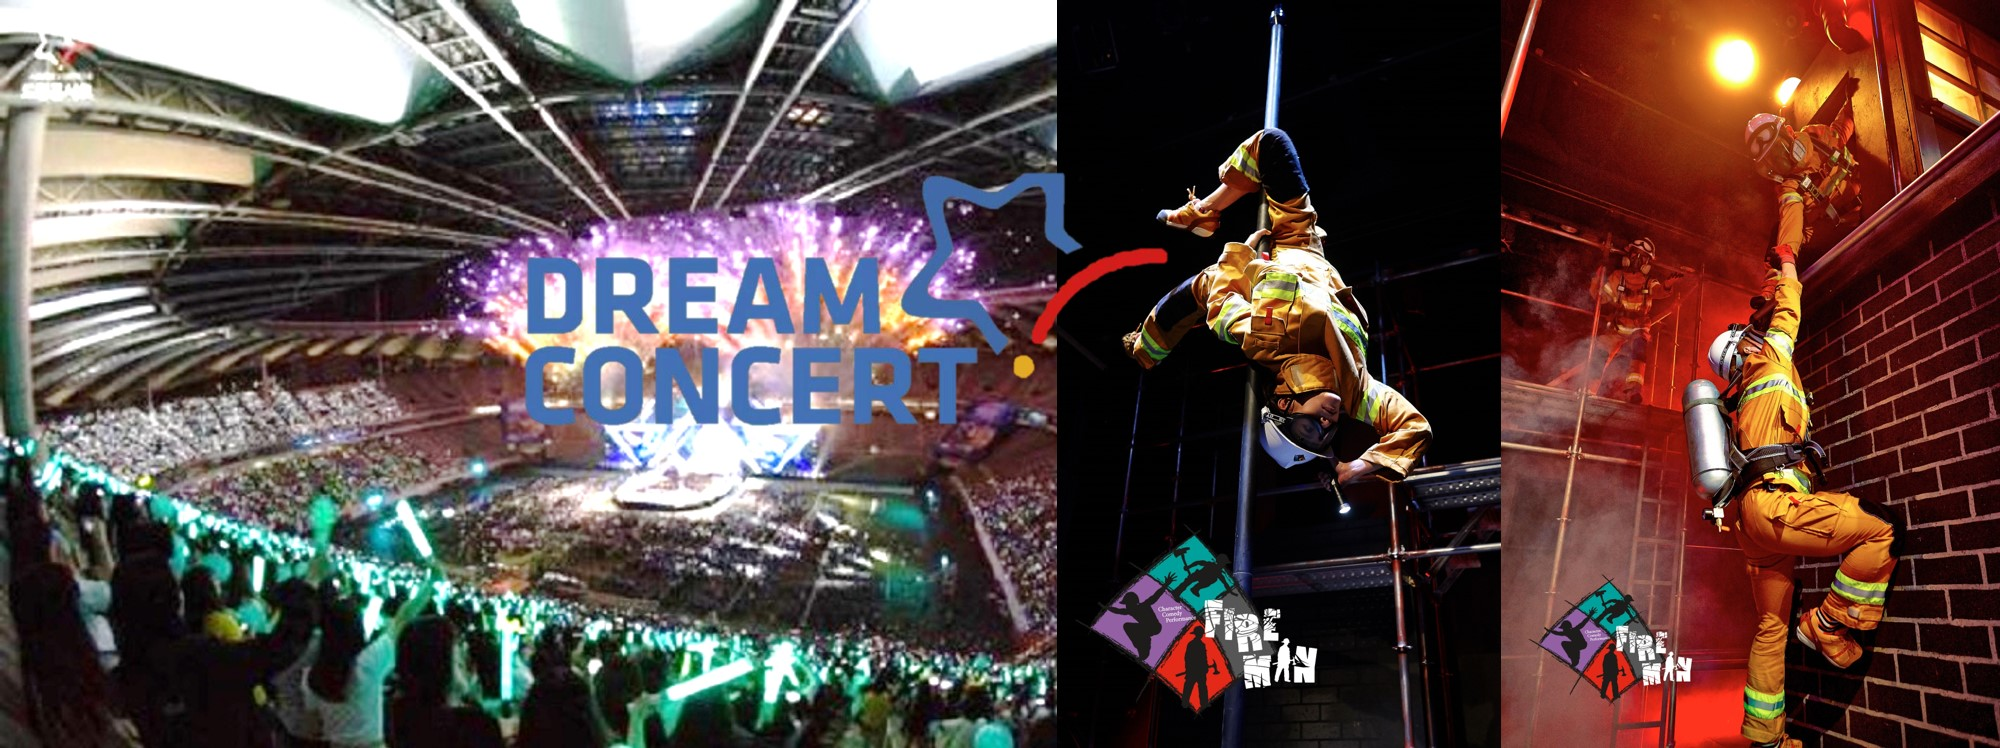 2019 Dream Concert Standing Zone Kpop Ticket and Musical FIREMAN Show  Package (May  18)